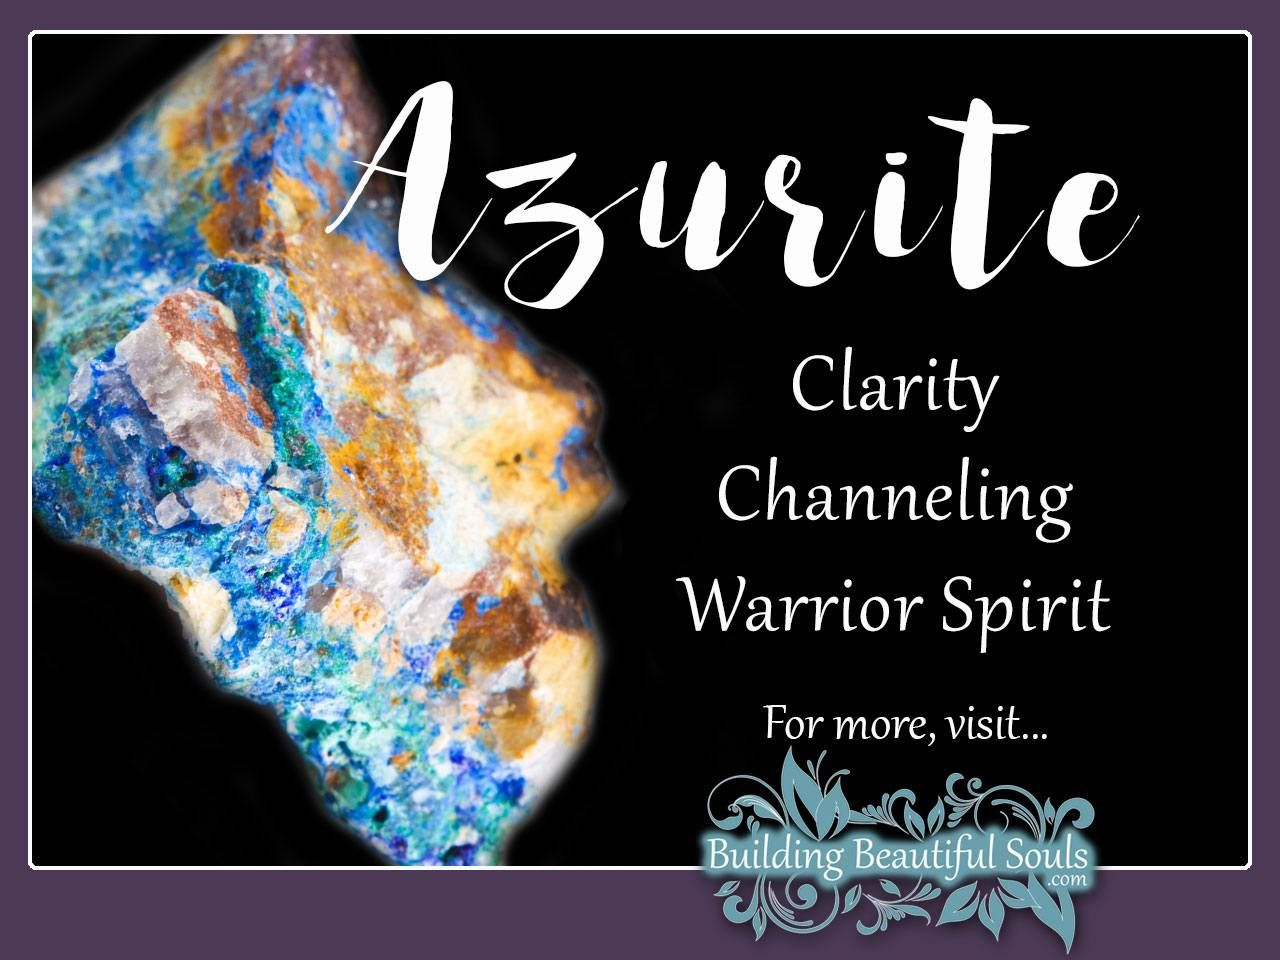 Sugilite properties and meaning photos crystal information - Azurite Meaning Healing Properties